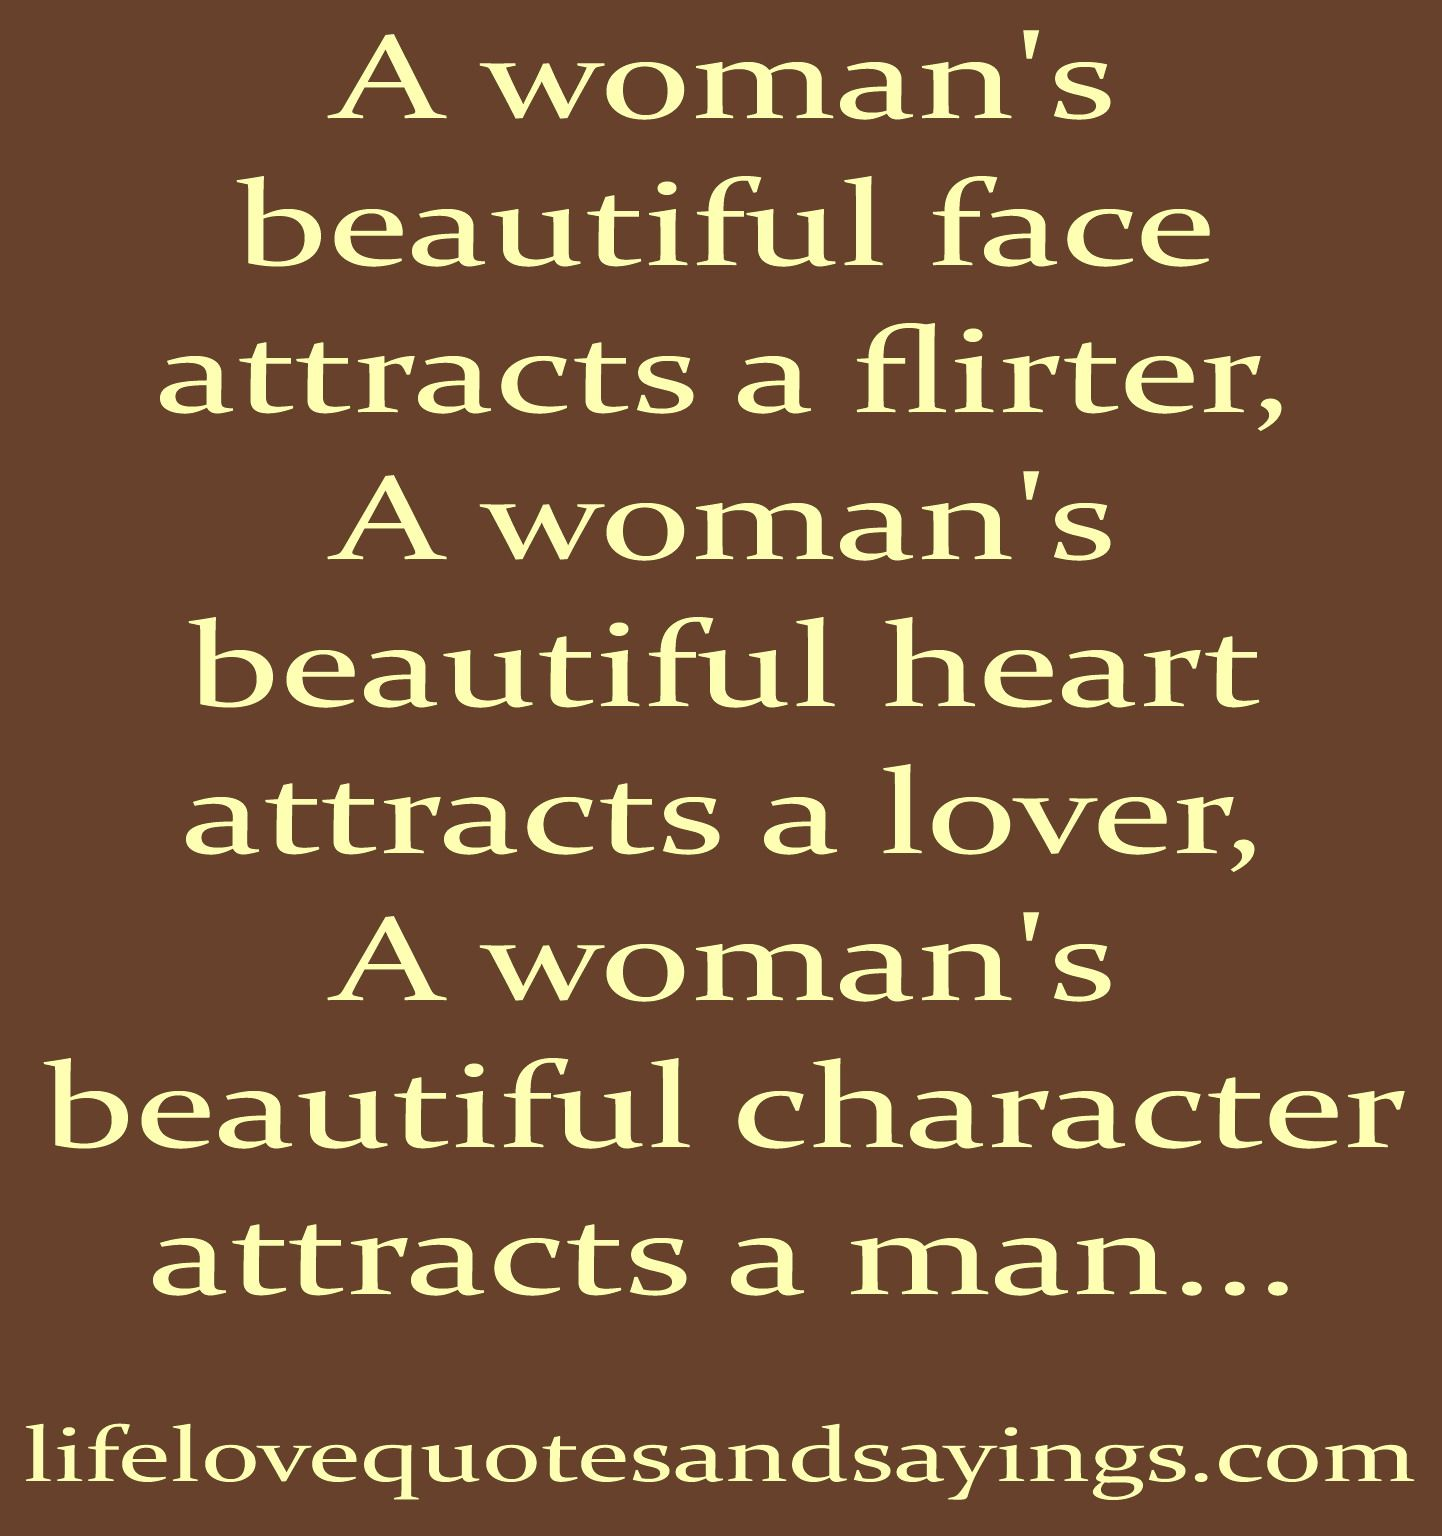 Quotes About Beautiful Women The Continous Interior  Real Women Quotes Beautiful Women Quotes .